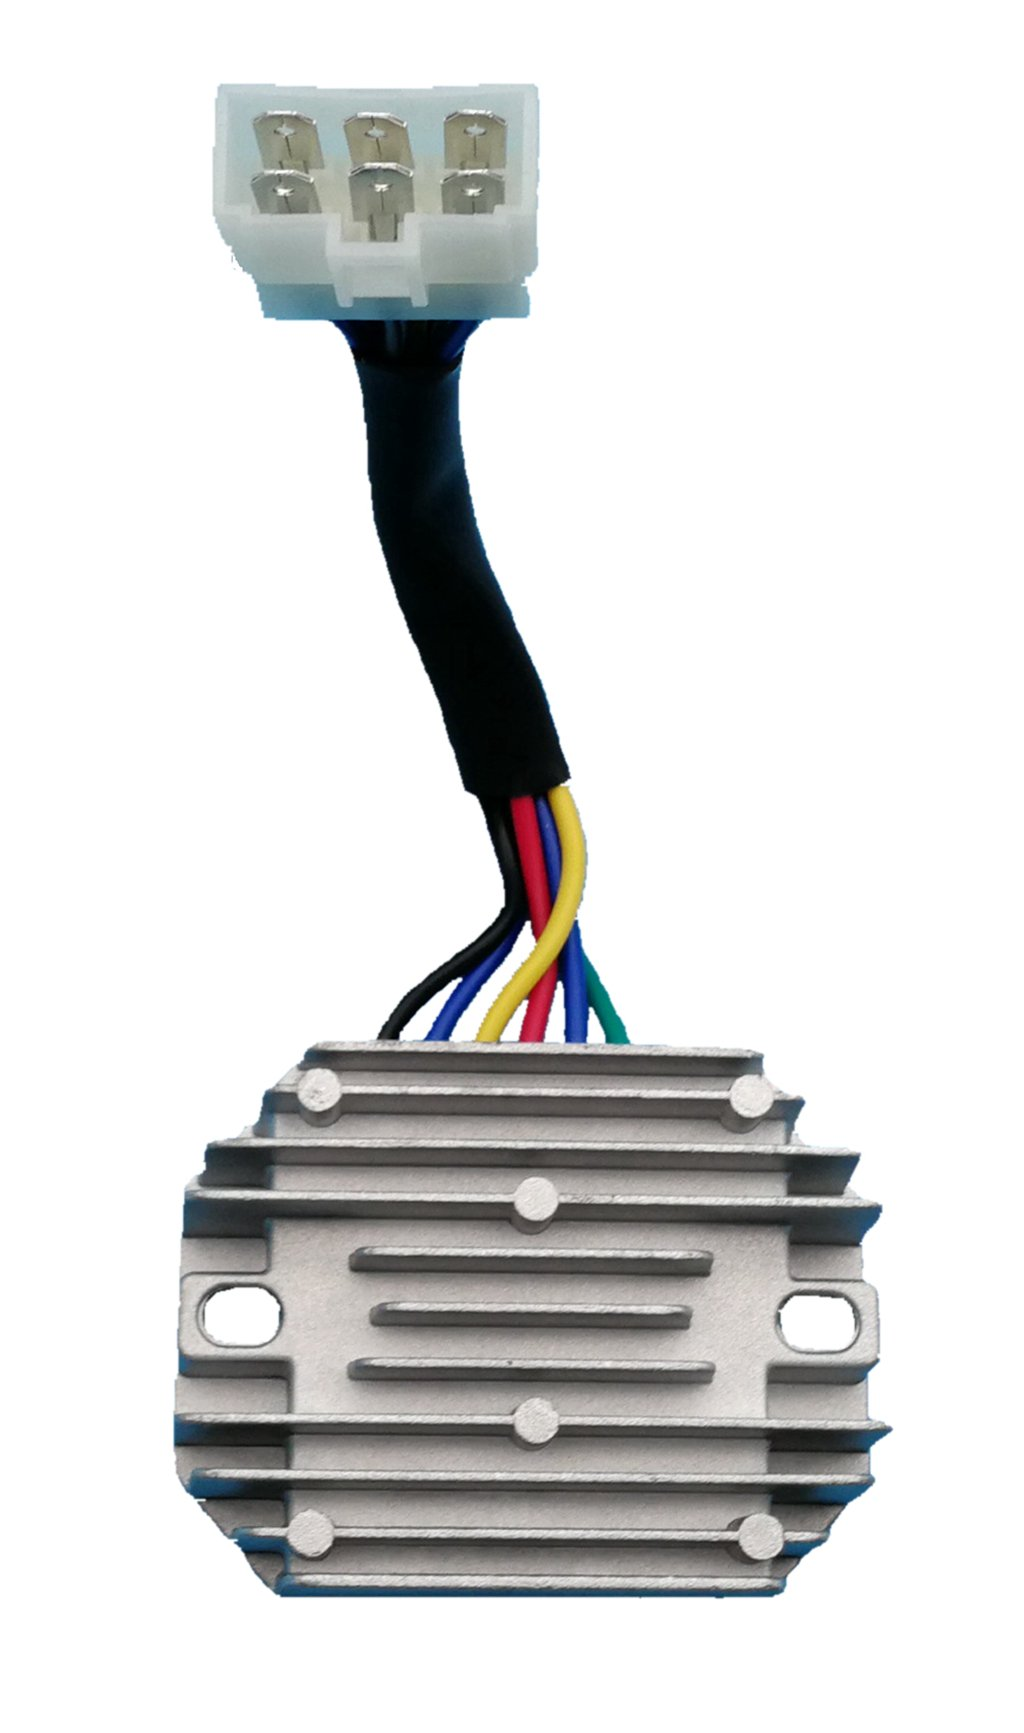 Tuzliufi Voltage Regulator Replace Kubota Grasshopper RS5101 RS5155 Replace 15351-64600 15351-64601 15531-64603 19267-64600 RP201-53710 Gh5530 230-22017 UTV RTV500 1822D 718D 721D 721G Tractor New Z21